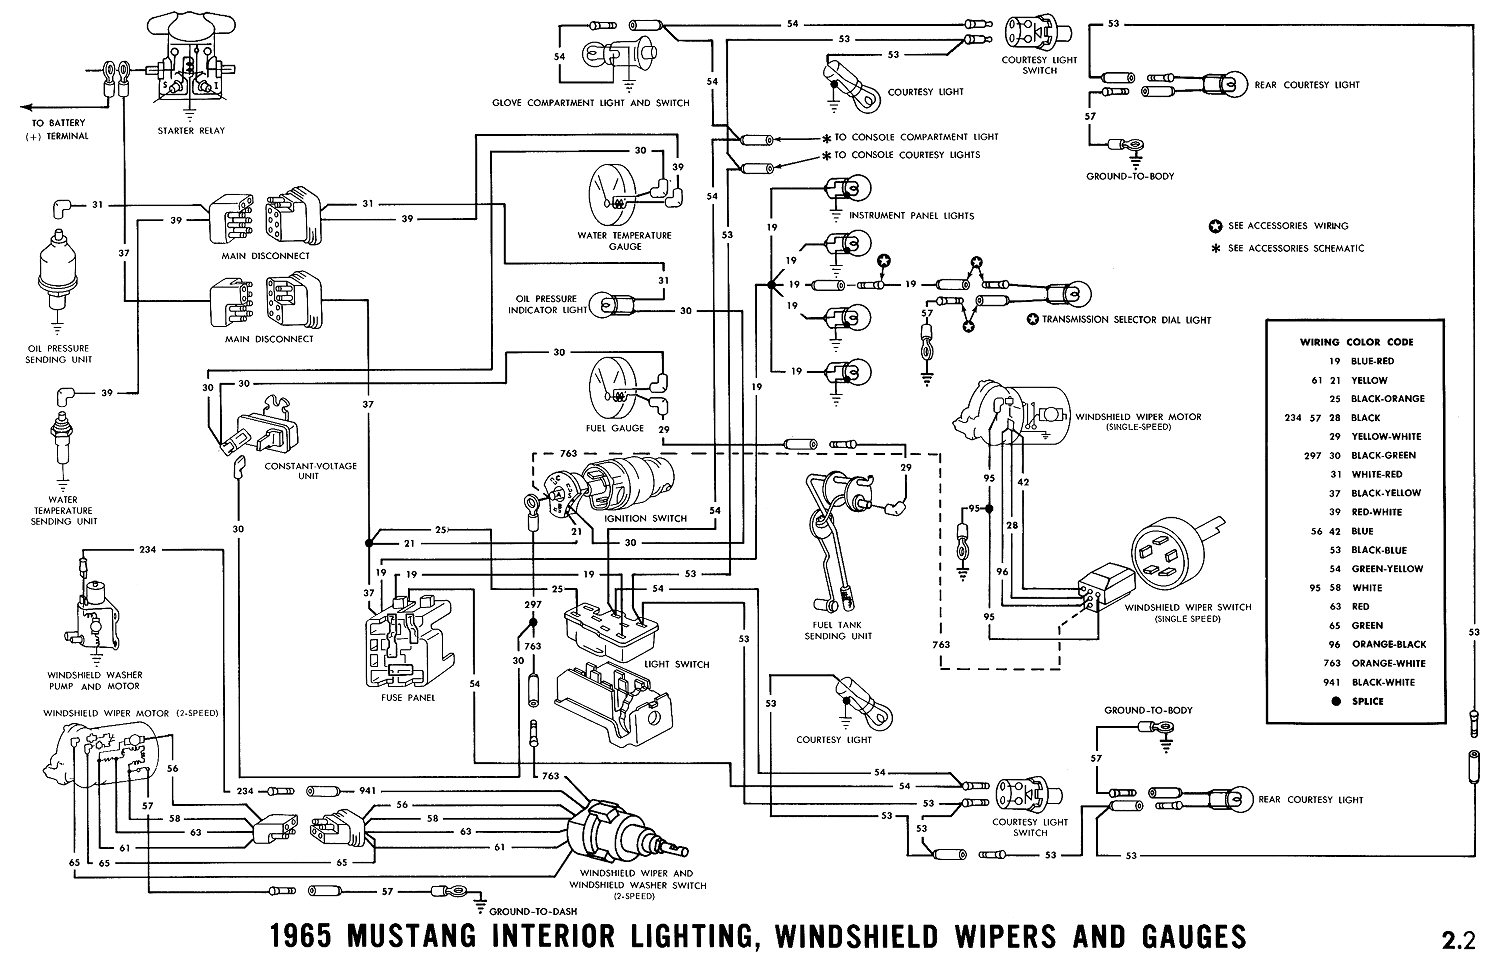 1968 Cadillac Deville Wiring Diagram Great Design Of 1985 Fleetwood Brougham Fuse Box Dash Detailed Schematics Rh Lelandlutheran Com 2005 1984 Engine